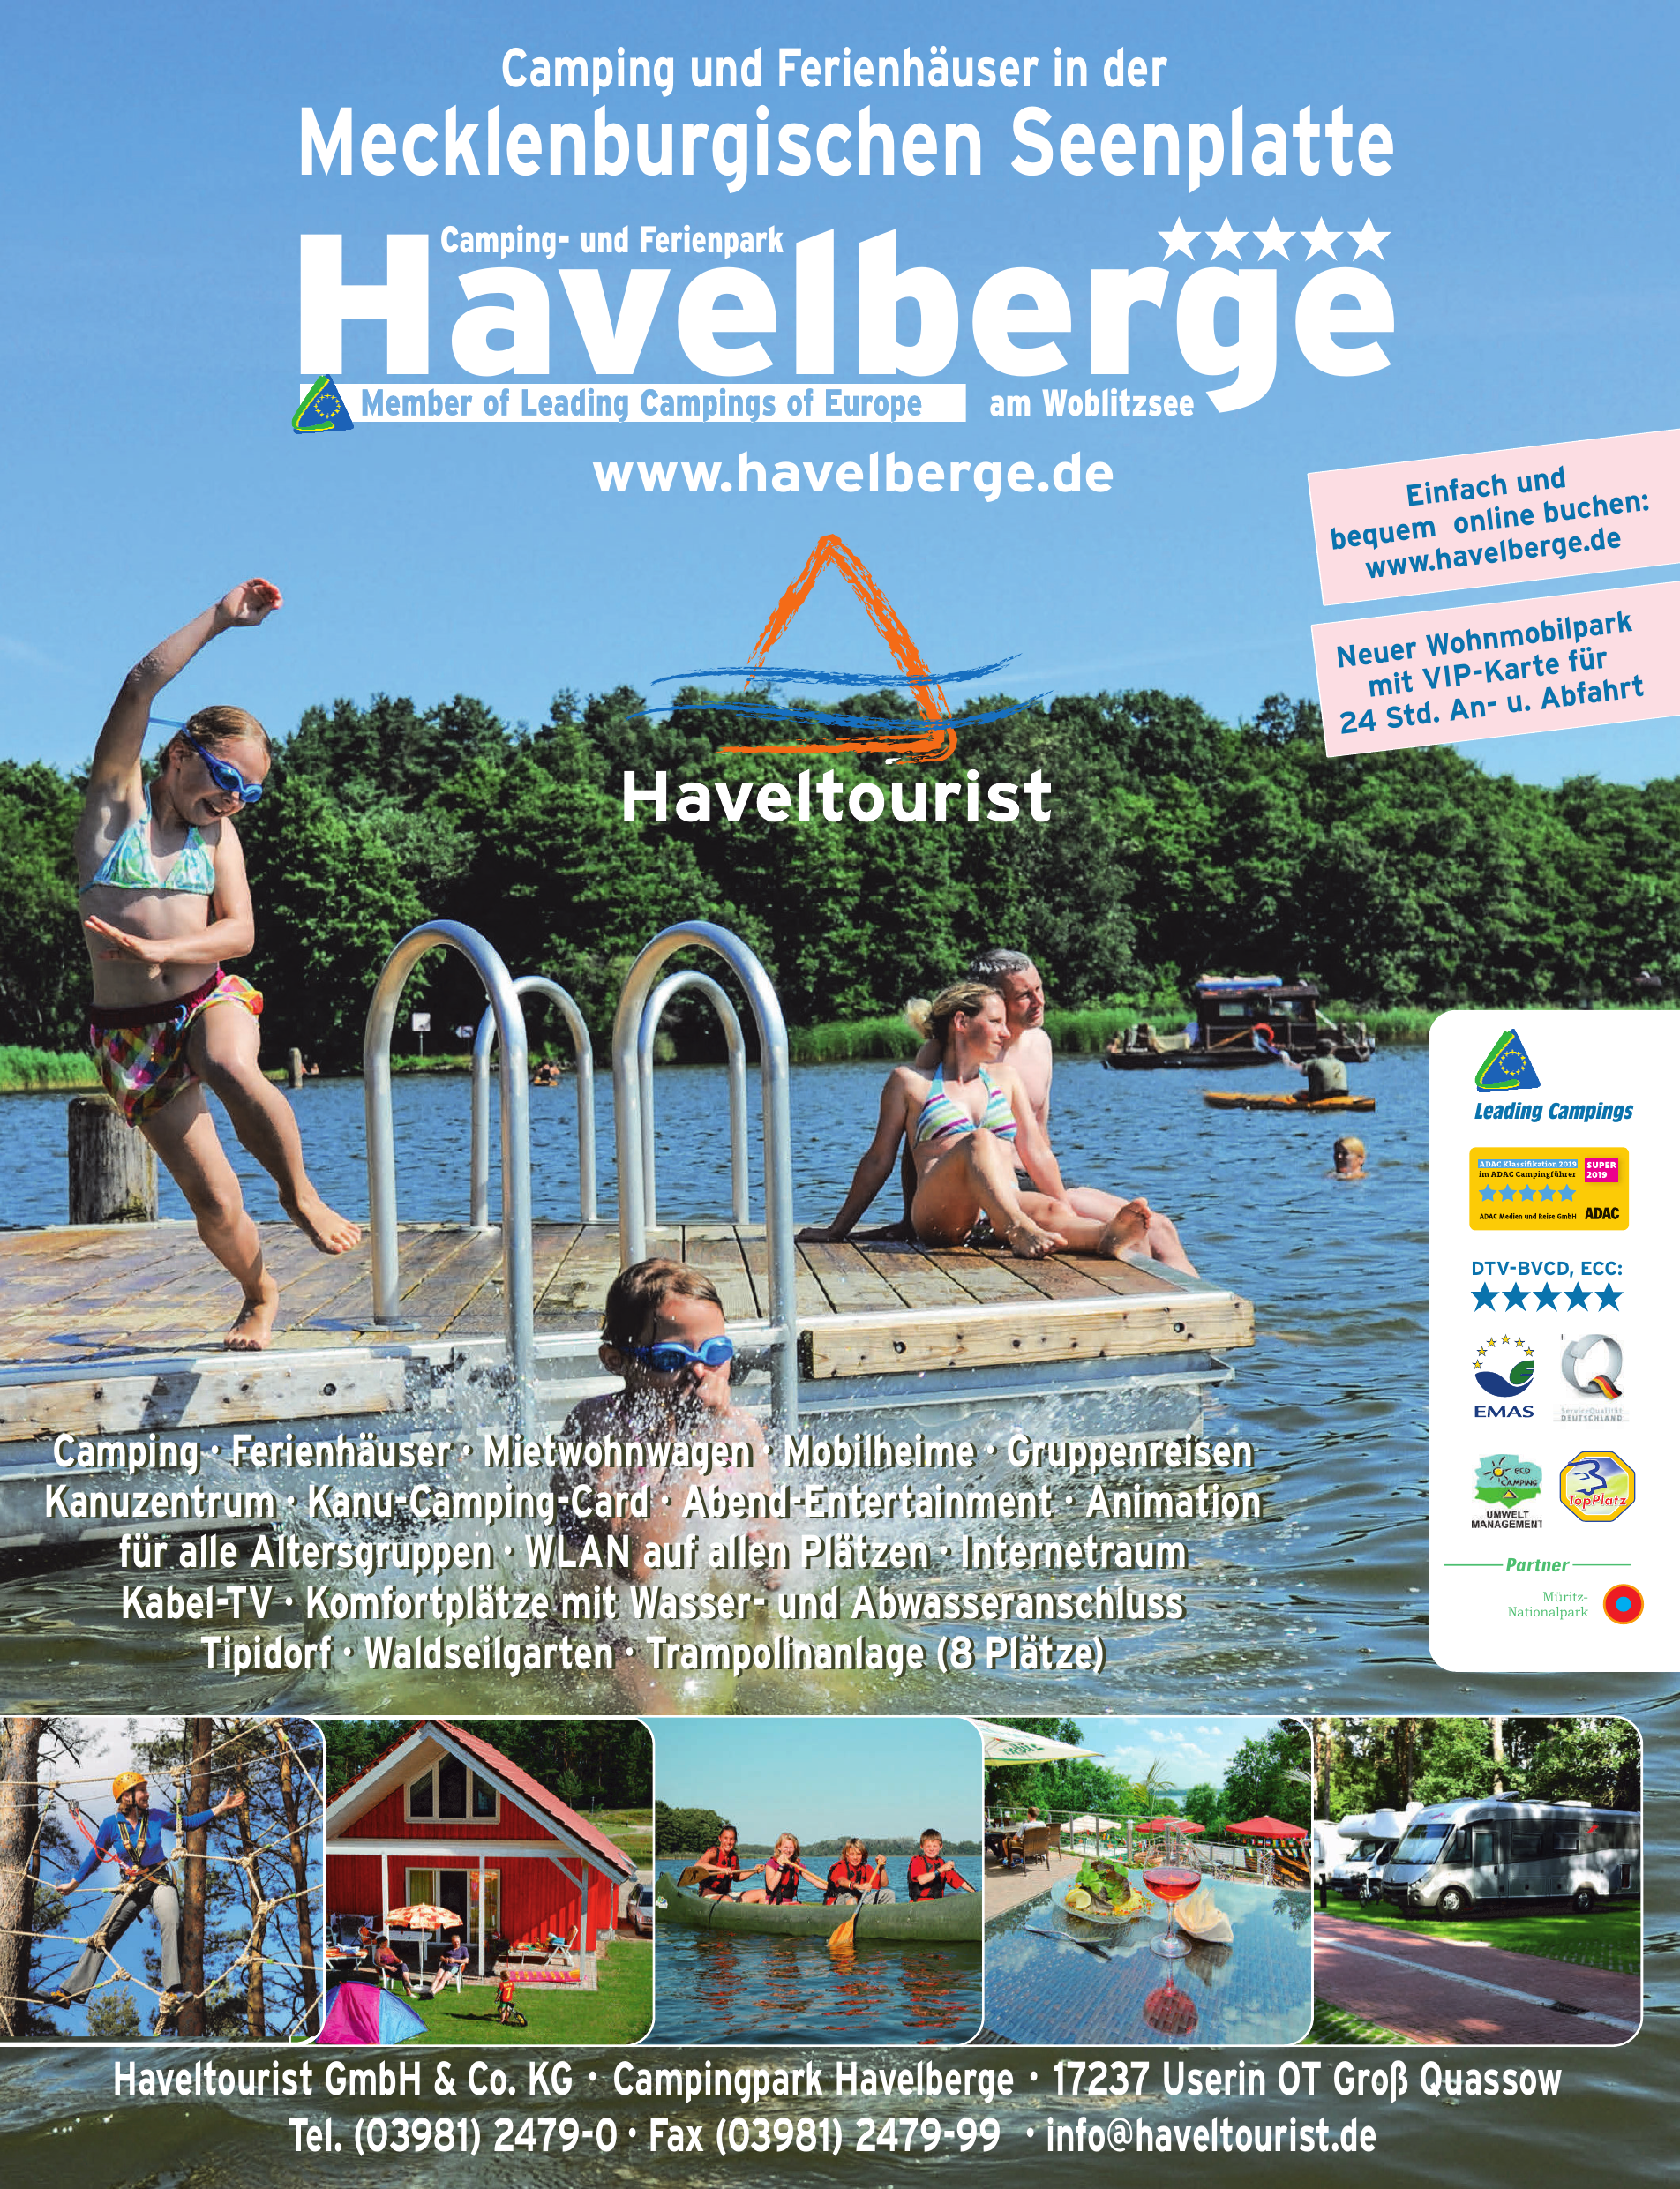 Haveltourist GmbH & Co. KG